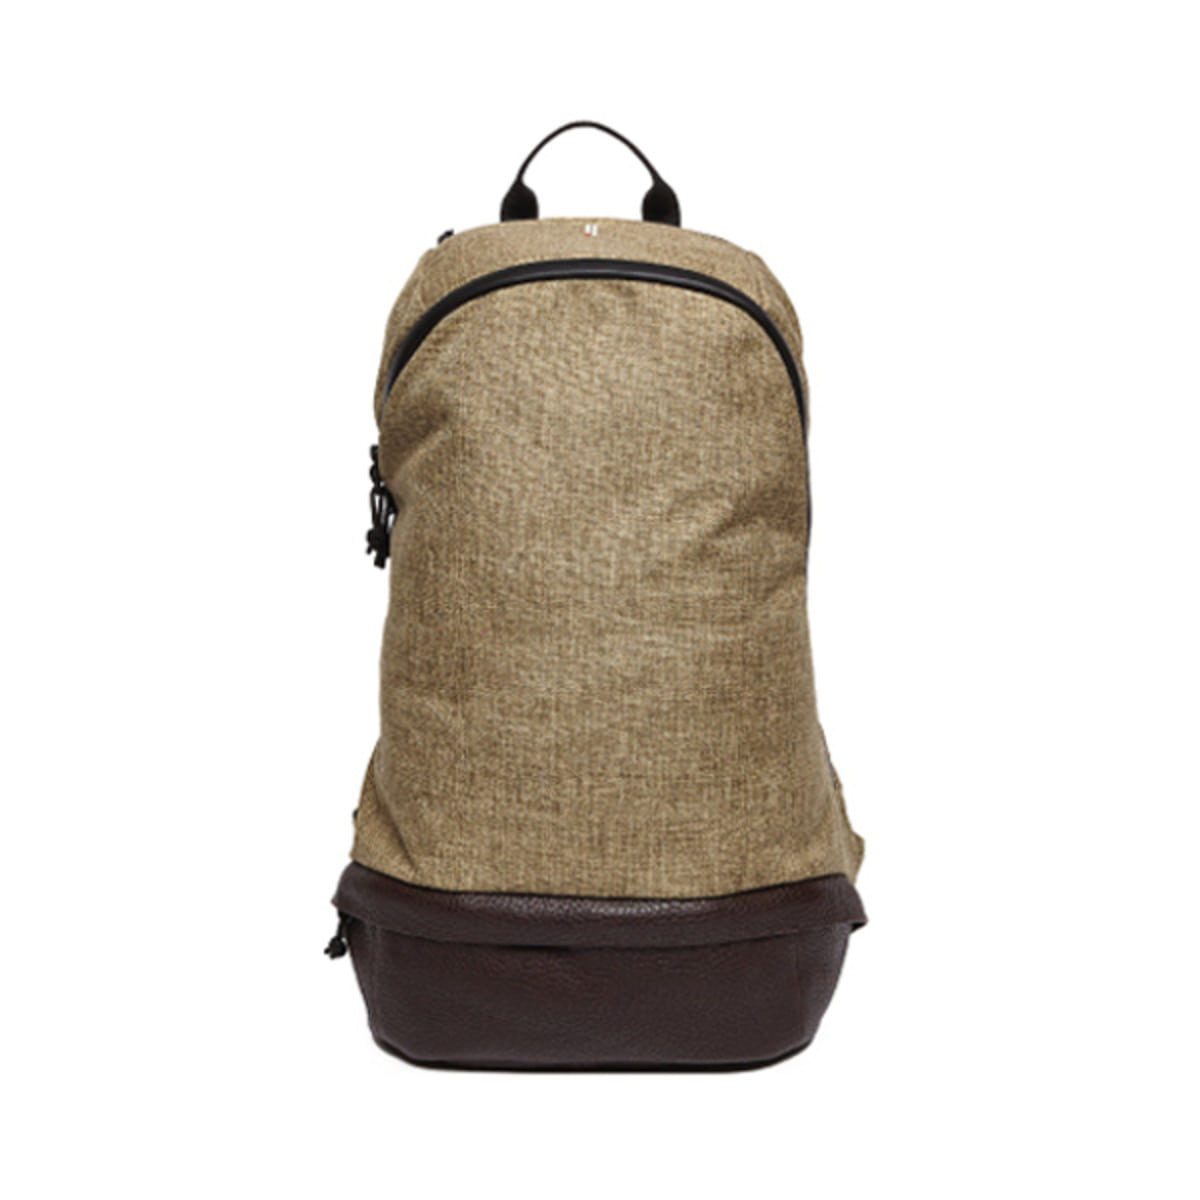 [TERG] DAY PACK 'SAVANNA'